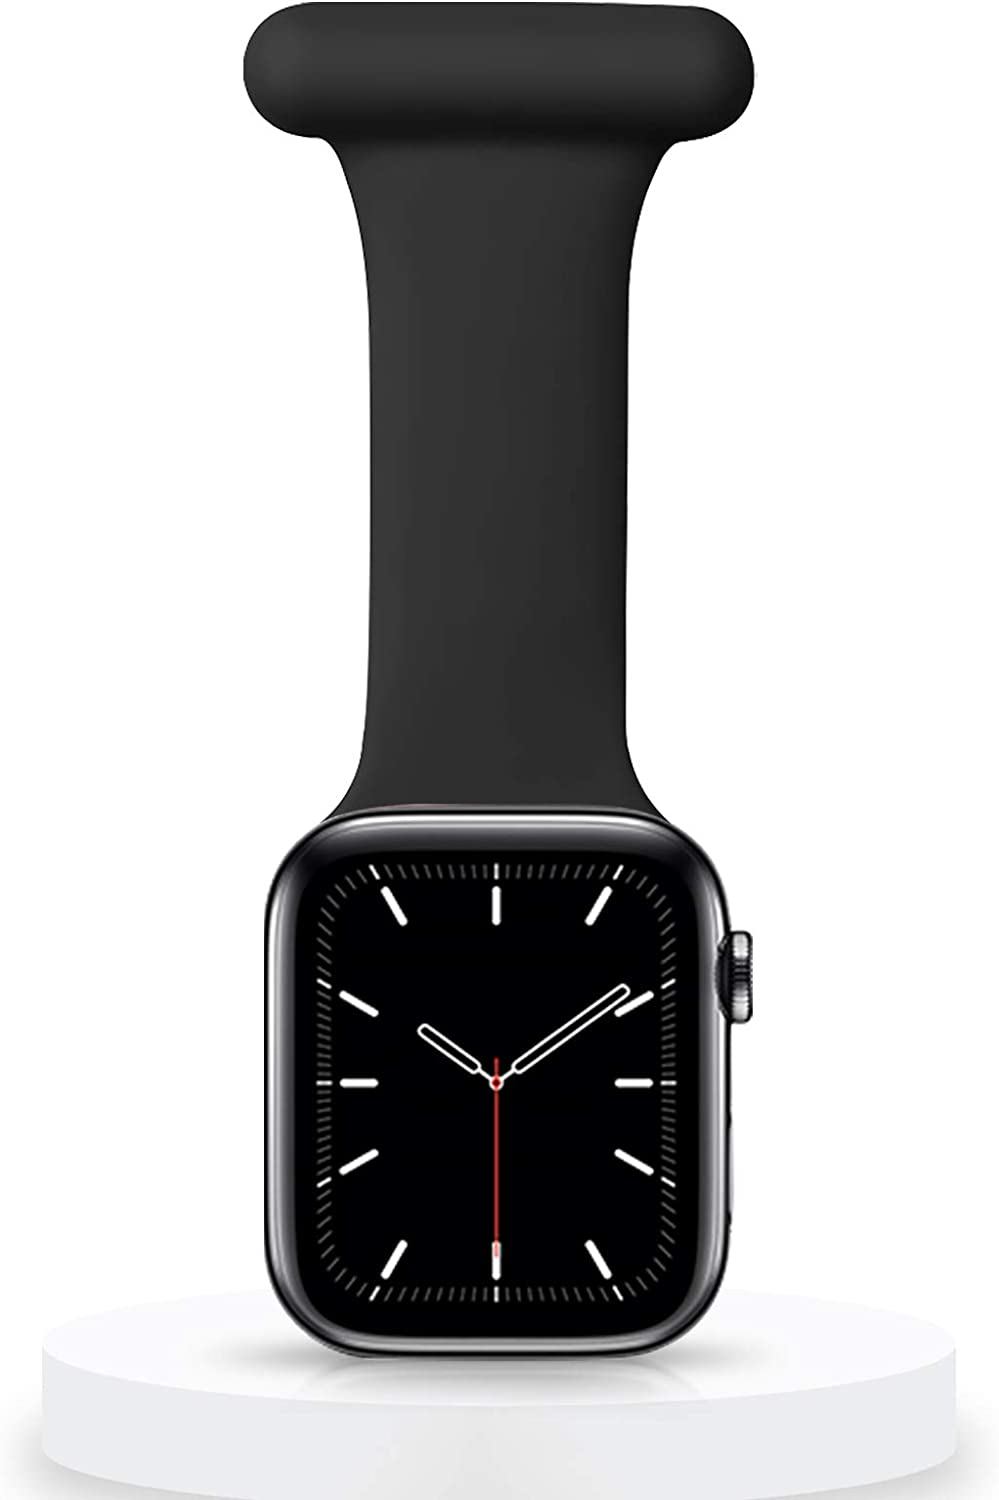 Veezoom Compatible with Apple Watch Band 38mm/40mm, 42/44mm, Silicone Pin Fob for Nurses Midwives Doctors Healthcare Paramedics, Infection Control Design for iWatch Series SE/6/5/4/3/2/1